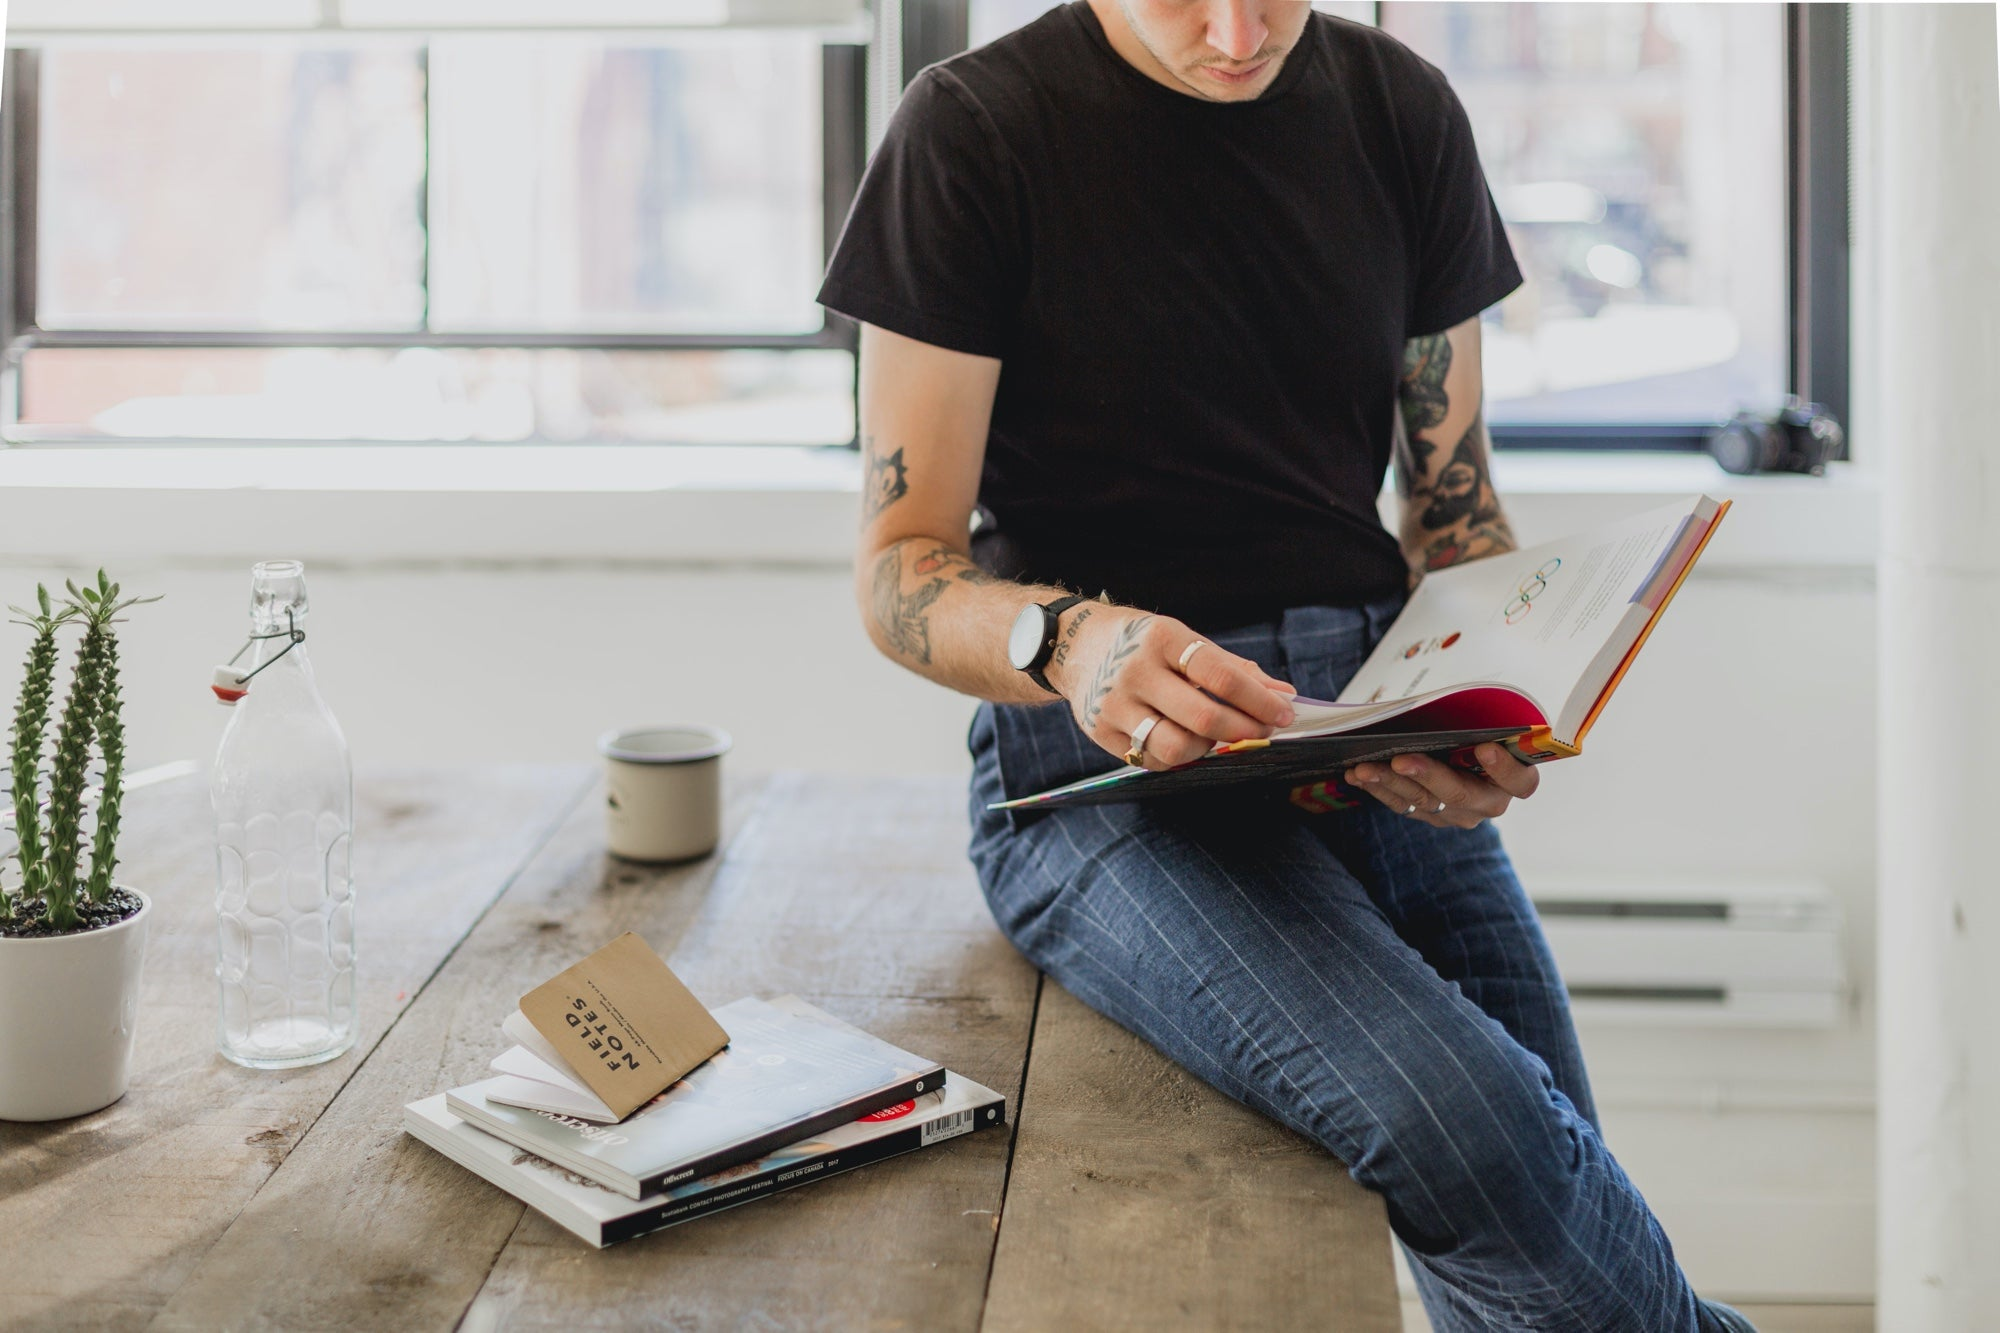 Man with tattoos sits on a table thumbing through a book